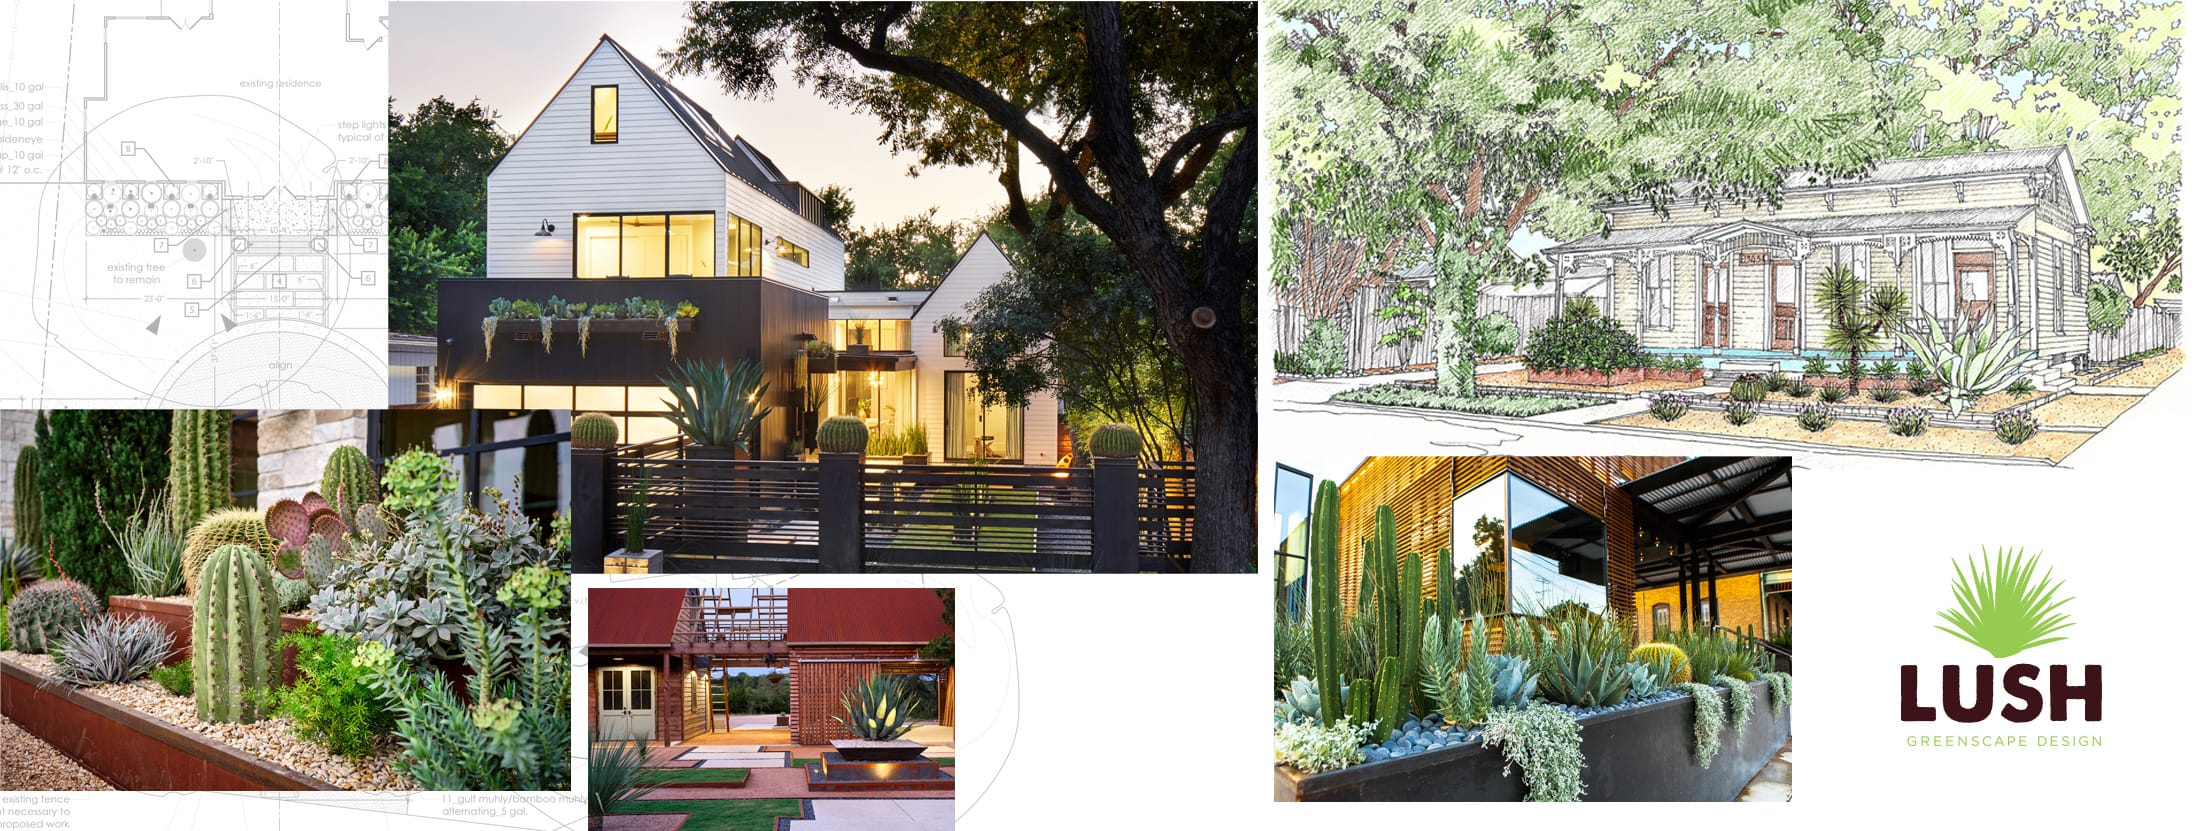 Lush GreenScape Design sustainable landscape design build collage header image